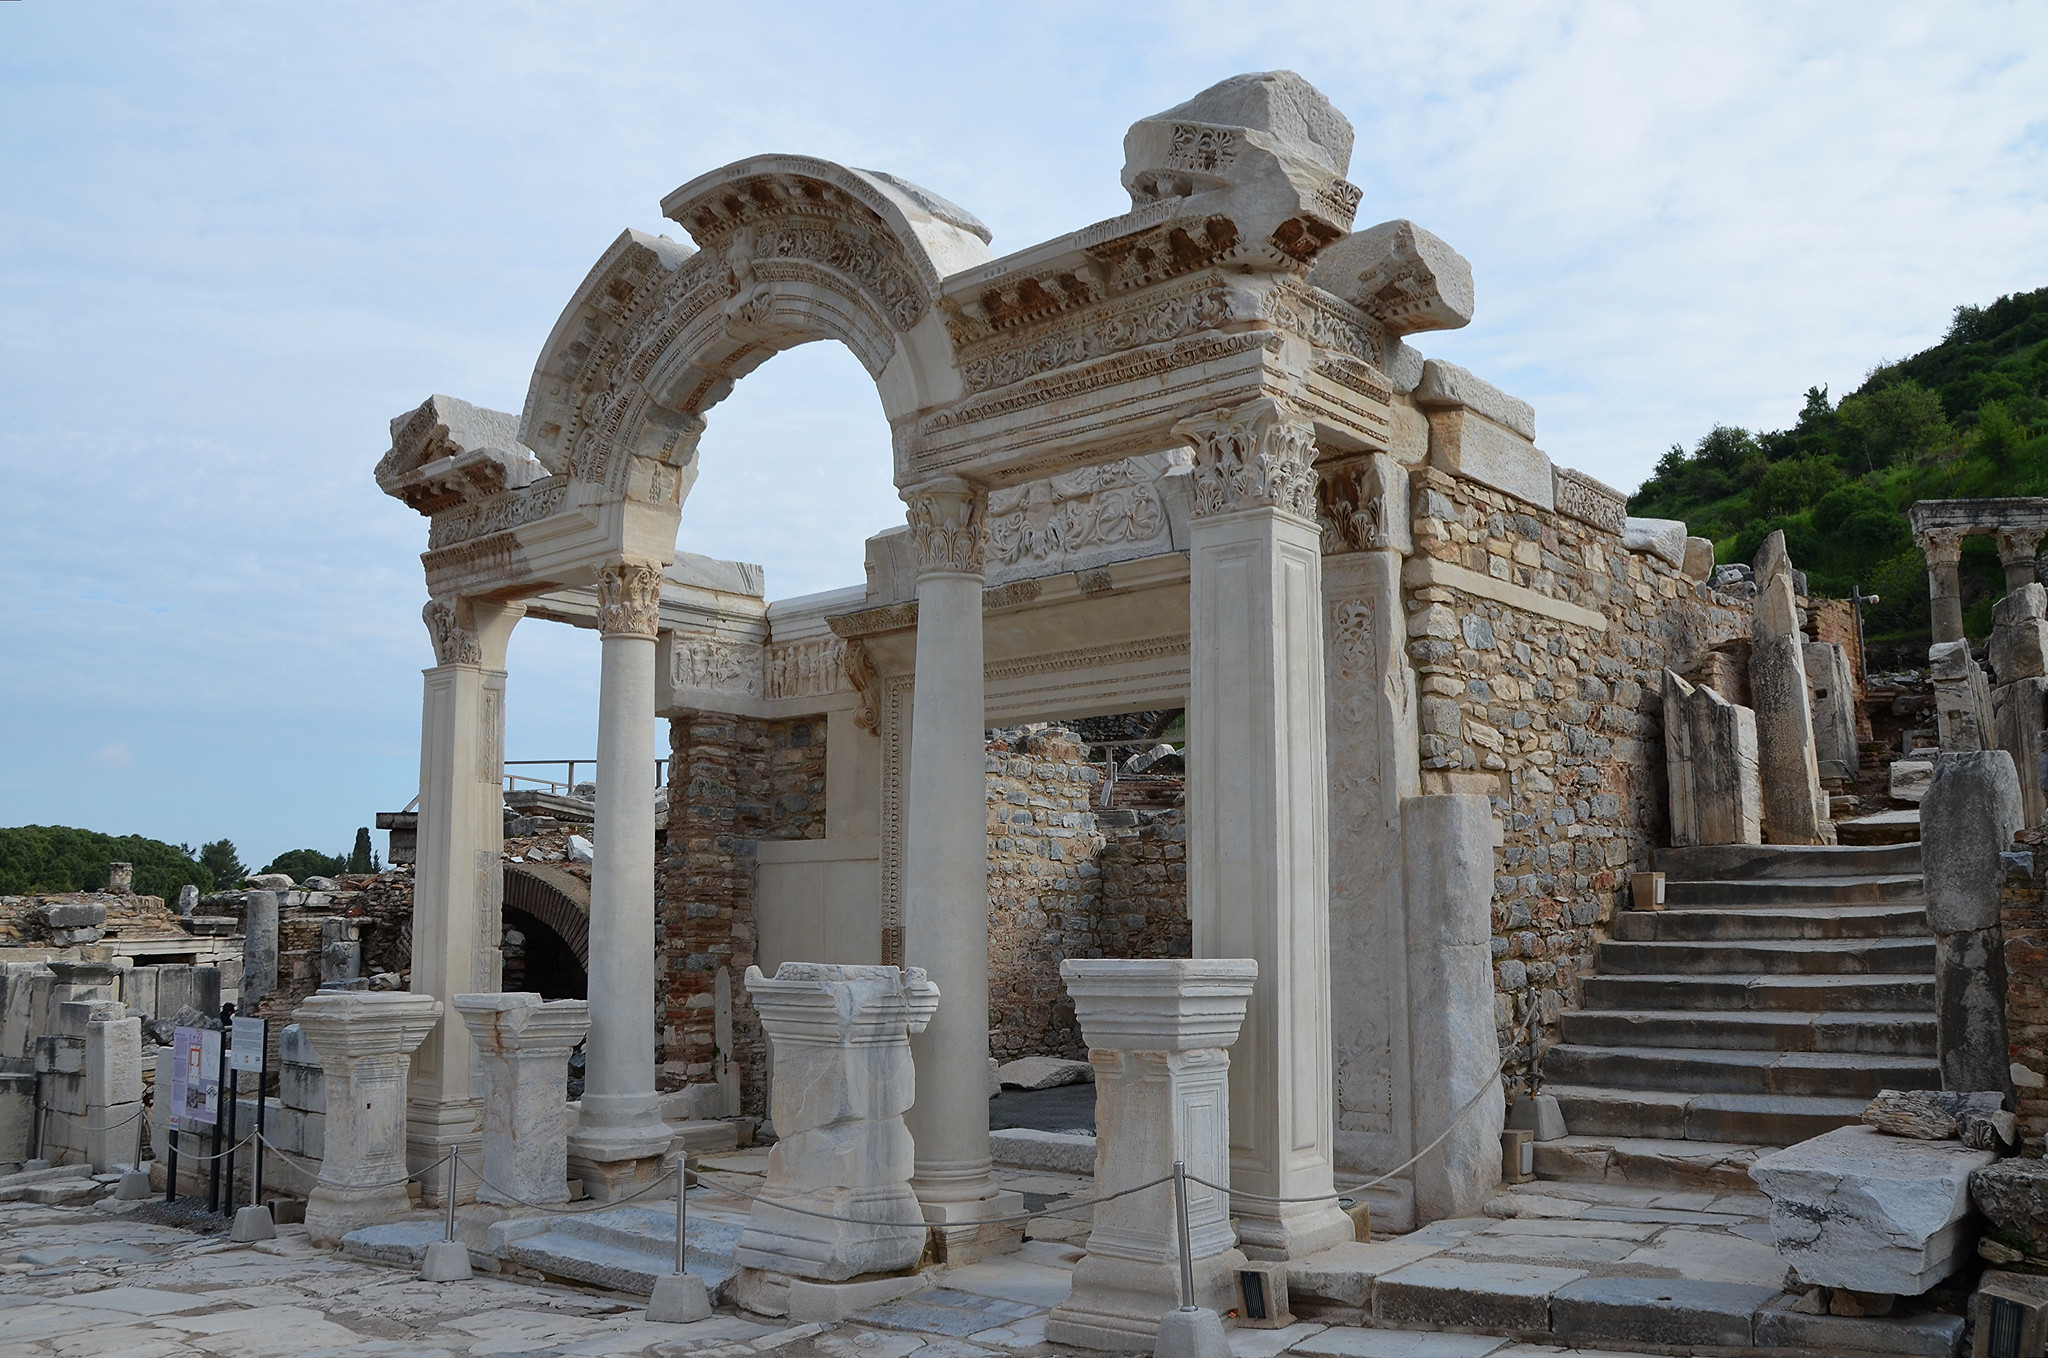 Travel Guide to the Ancient City of Ephesus, Turkey